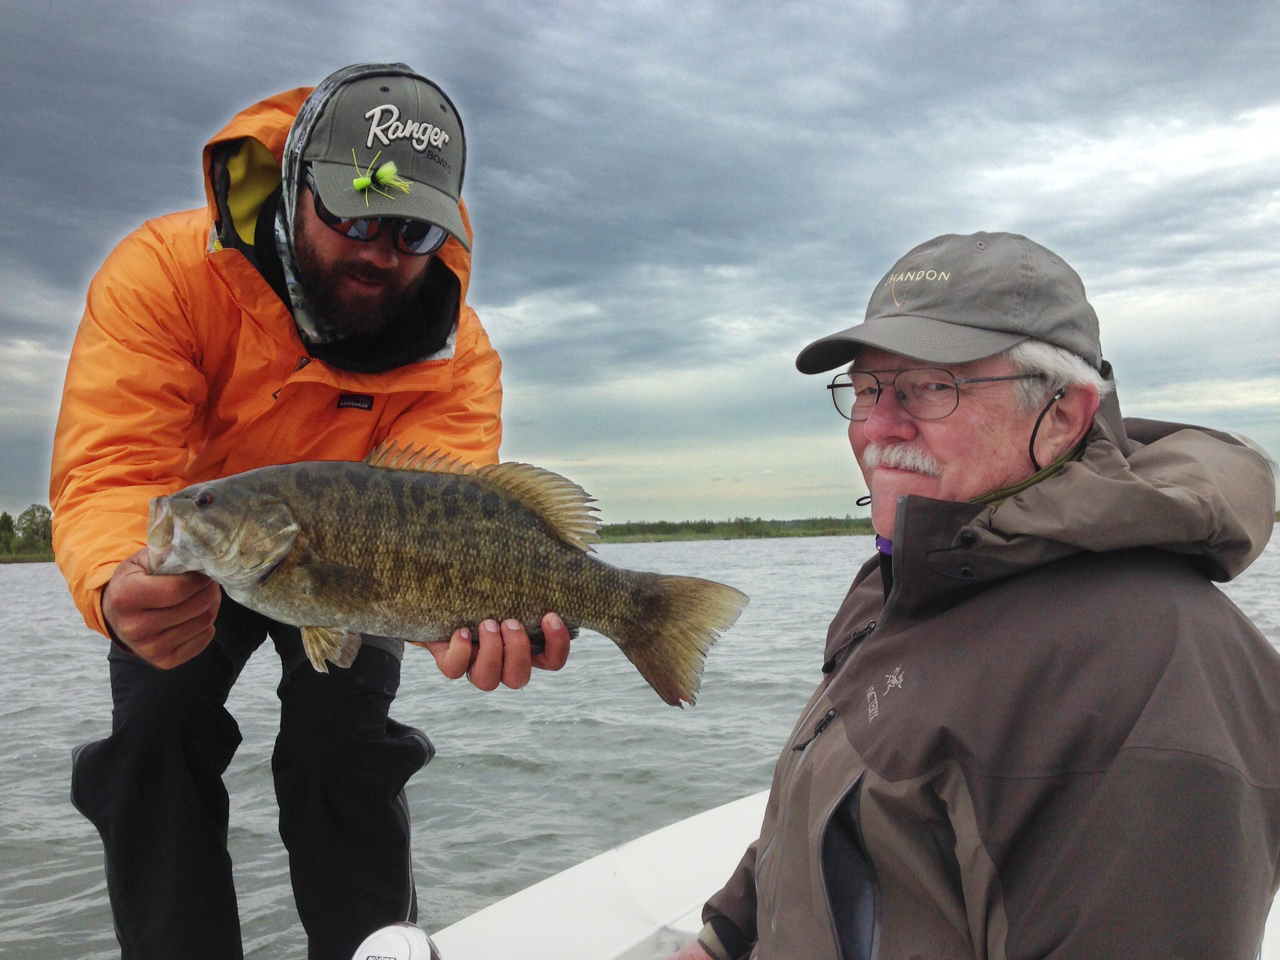 Walter and his crew braved the nasty conditions yesterday and put a few nice fish in the boat on both flies and plastics.